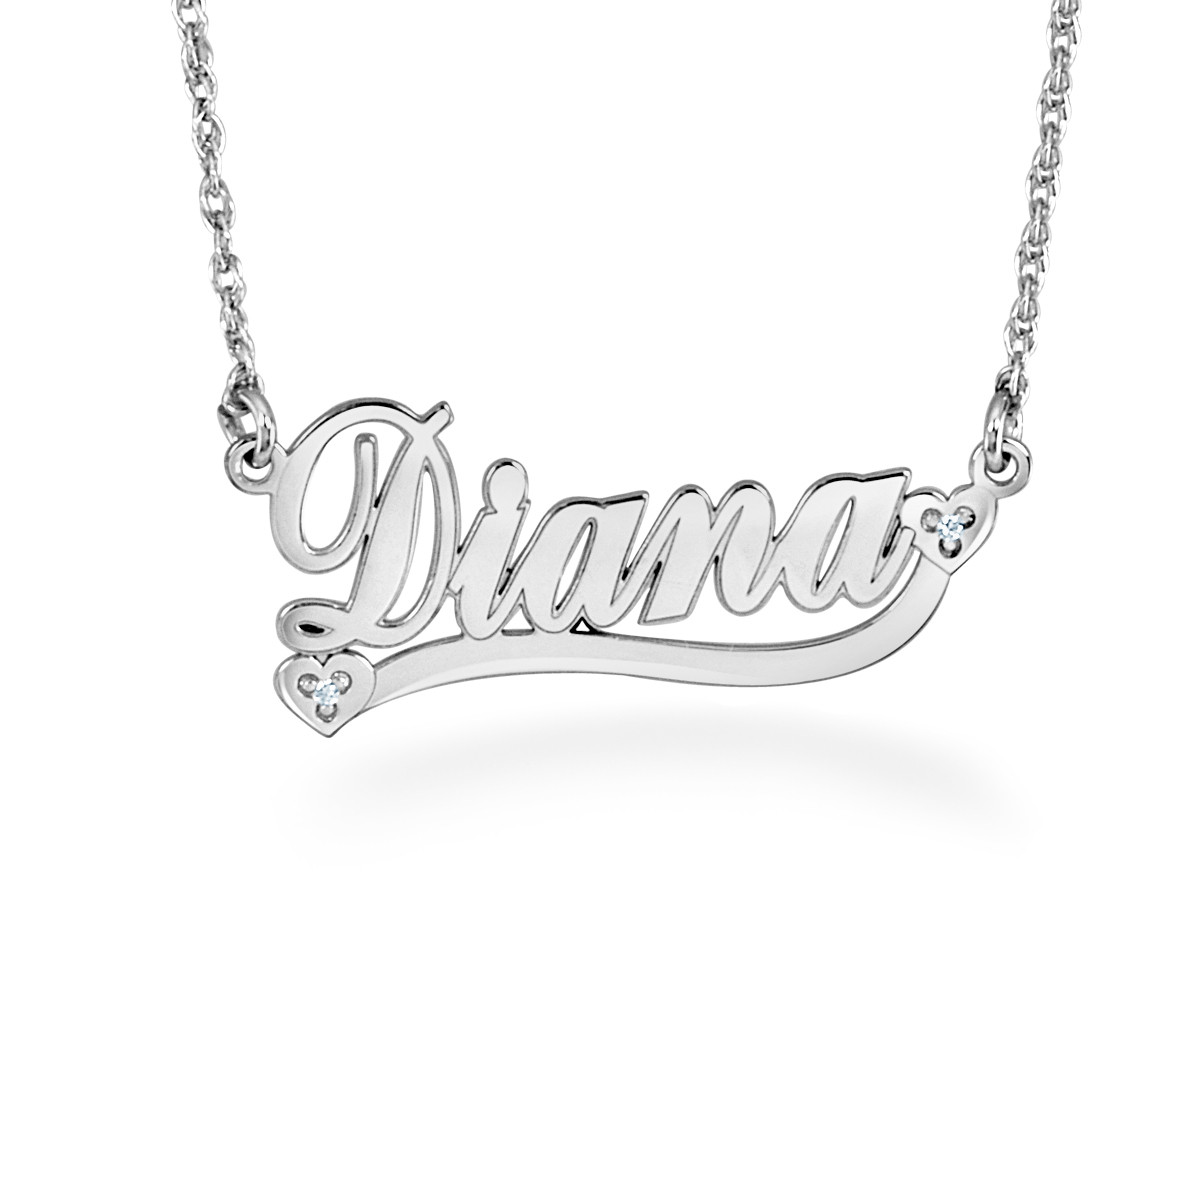 00a8215b8 Diamond Accent Cursive Name with Hearts and Ribbon Necklace (1 Line) |  Personalized Necklaces | Create Your Own | Zales